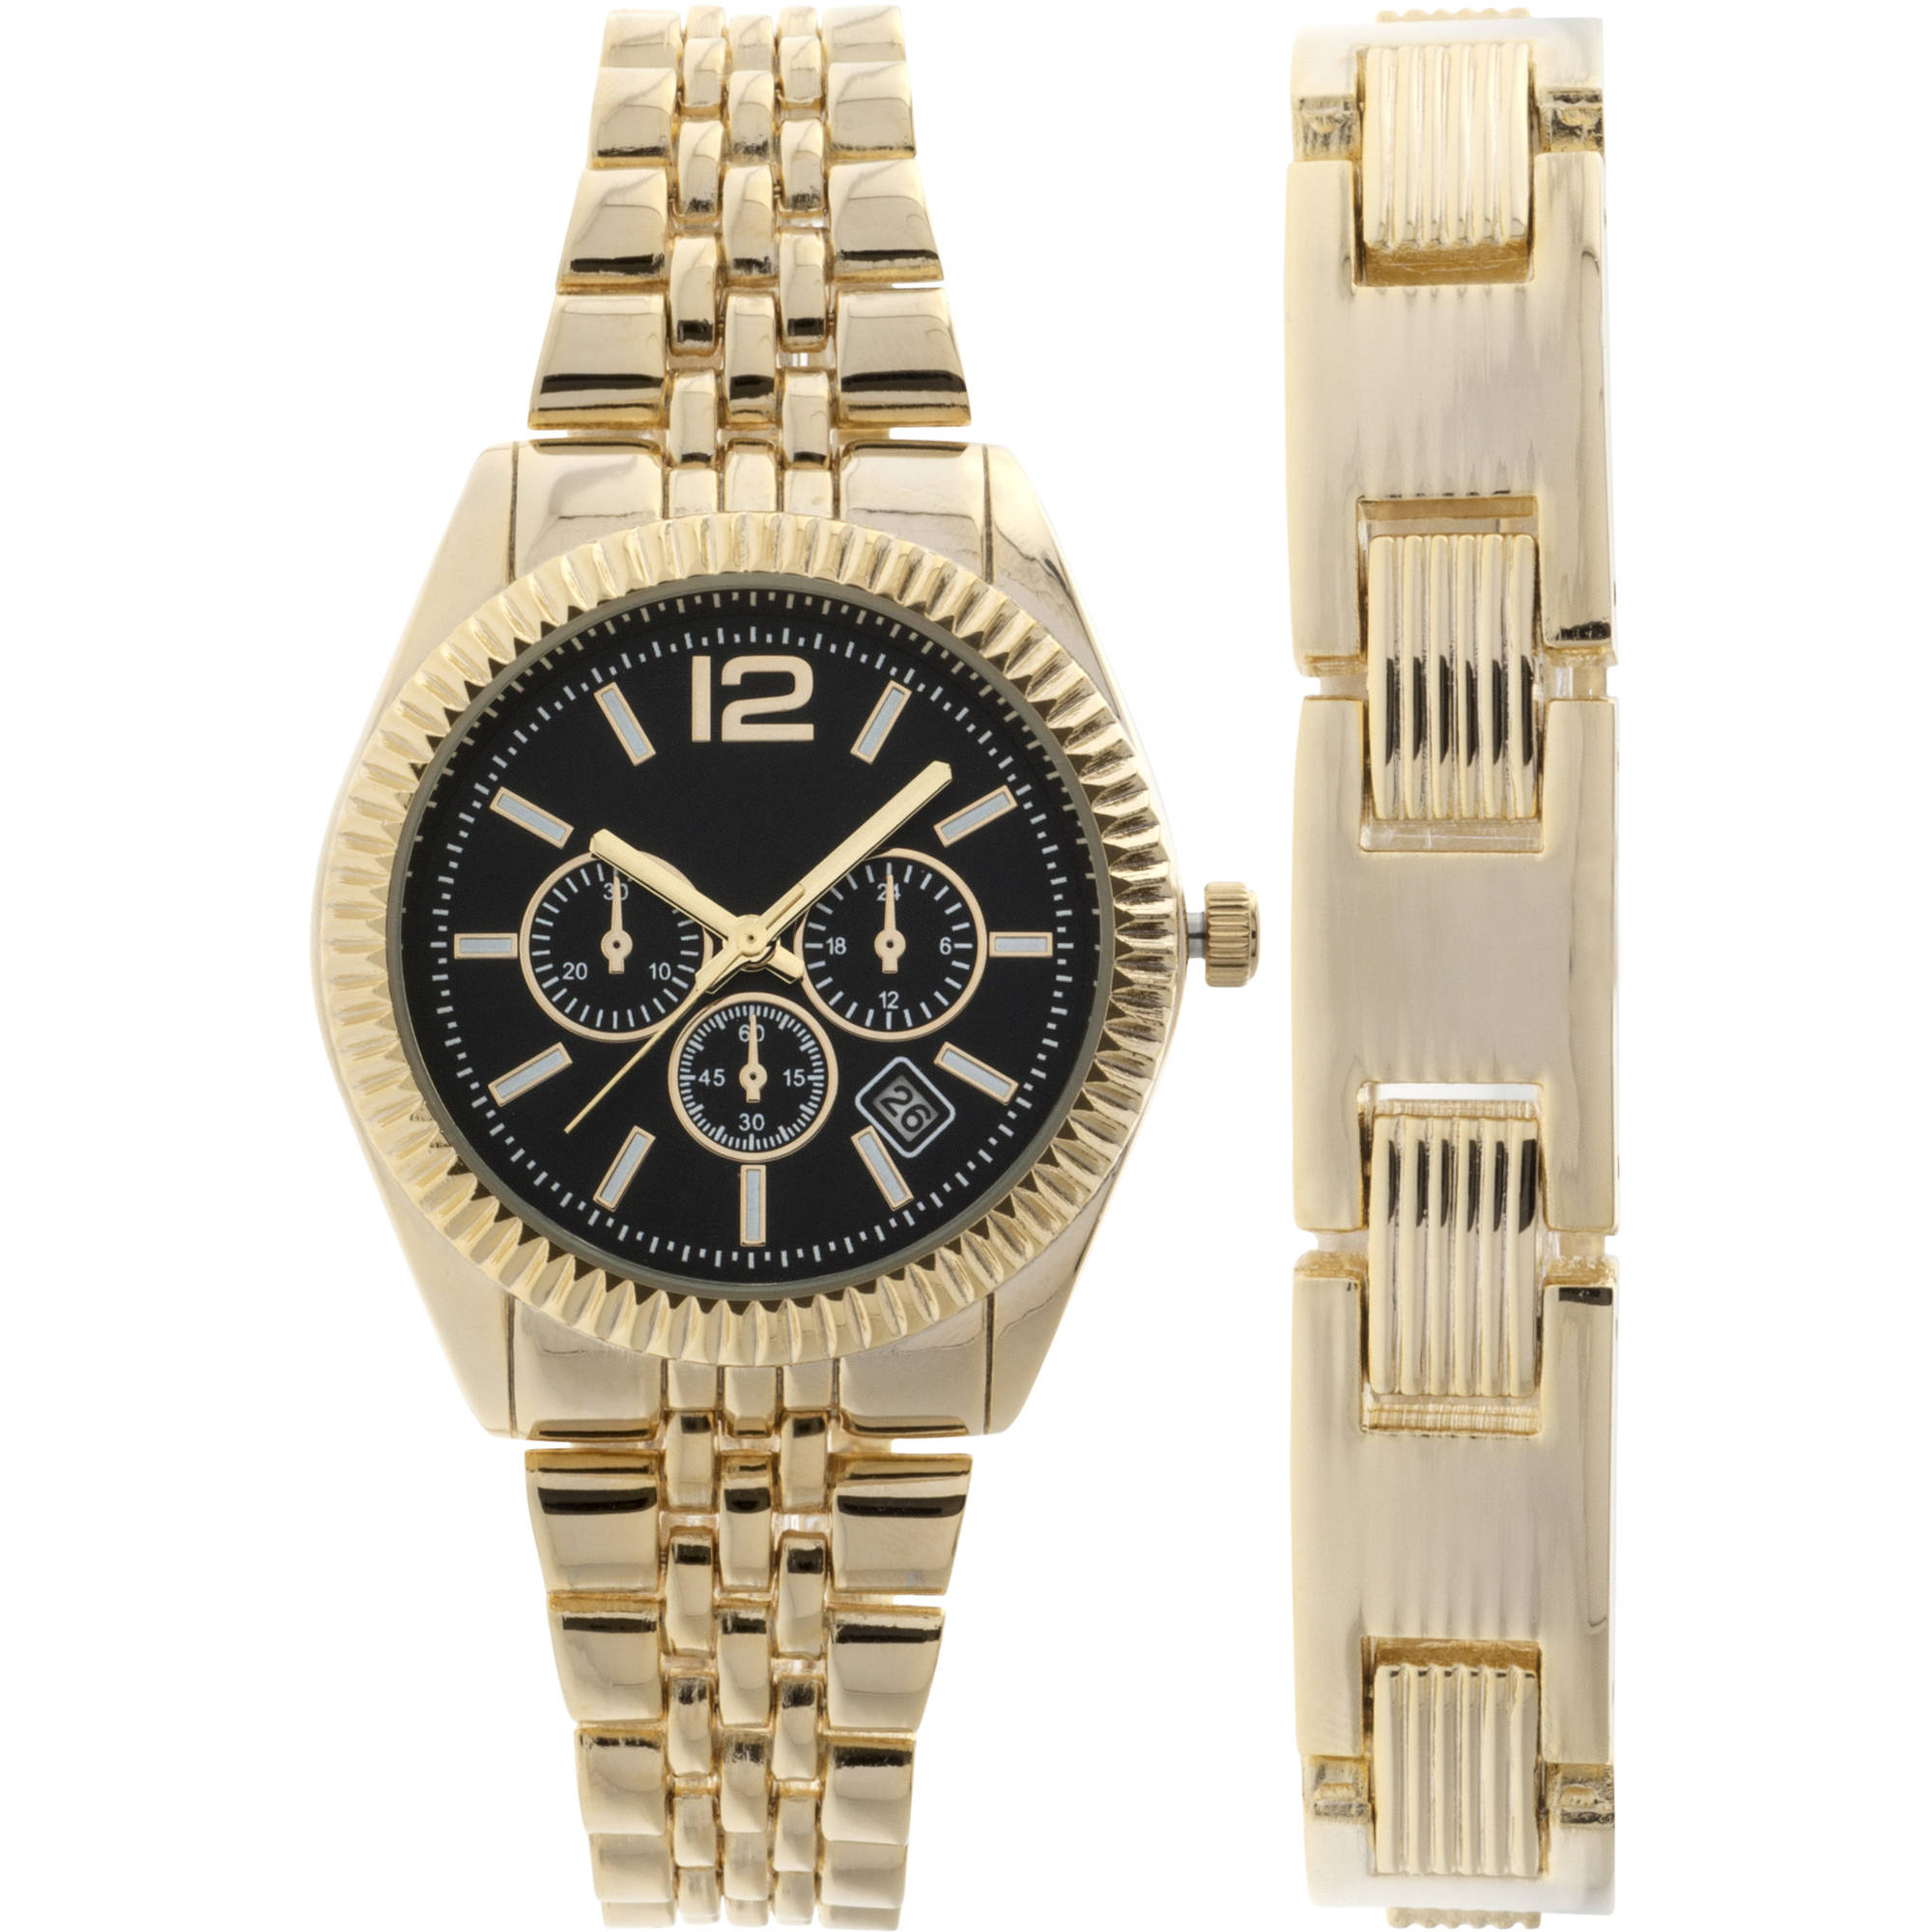 Men's Gold-Tone Round Watch Bracelet Set, Black Dial, Date Window on Dial